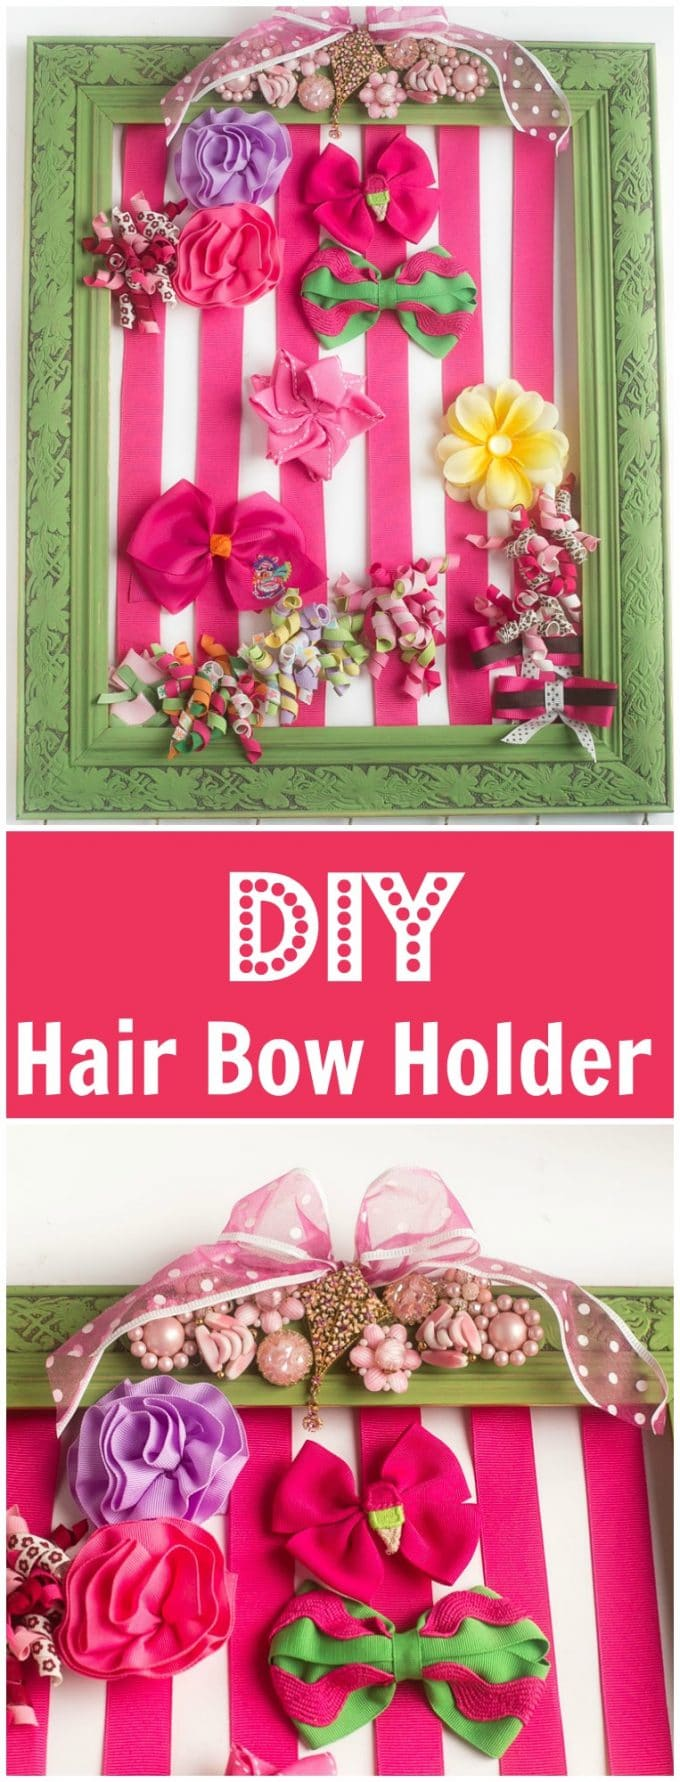 DIY Hair Bow Holder - Make your own hair bow holder for less than $20, hang it in your daughter's room or give it as a baby shower gift.